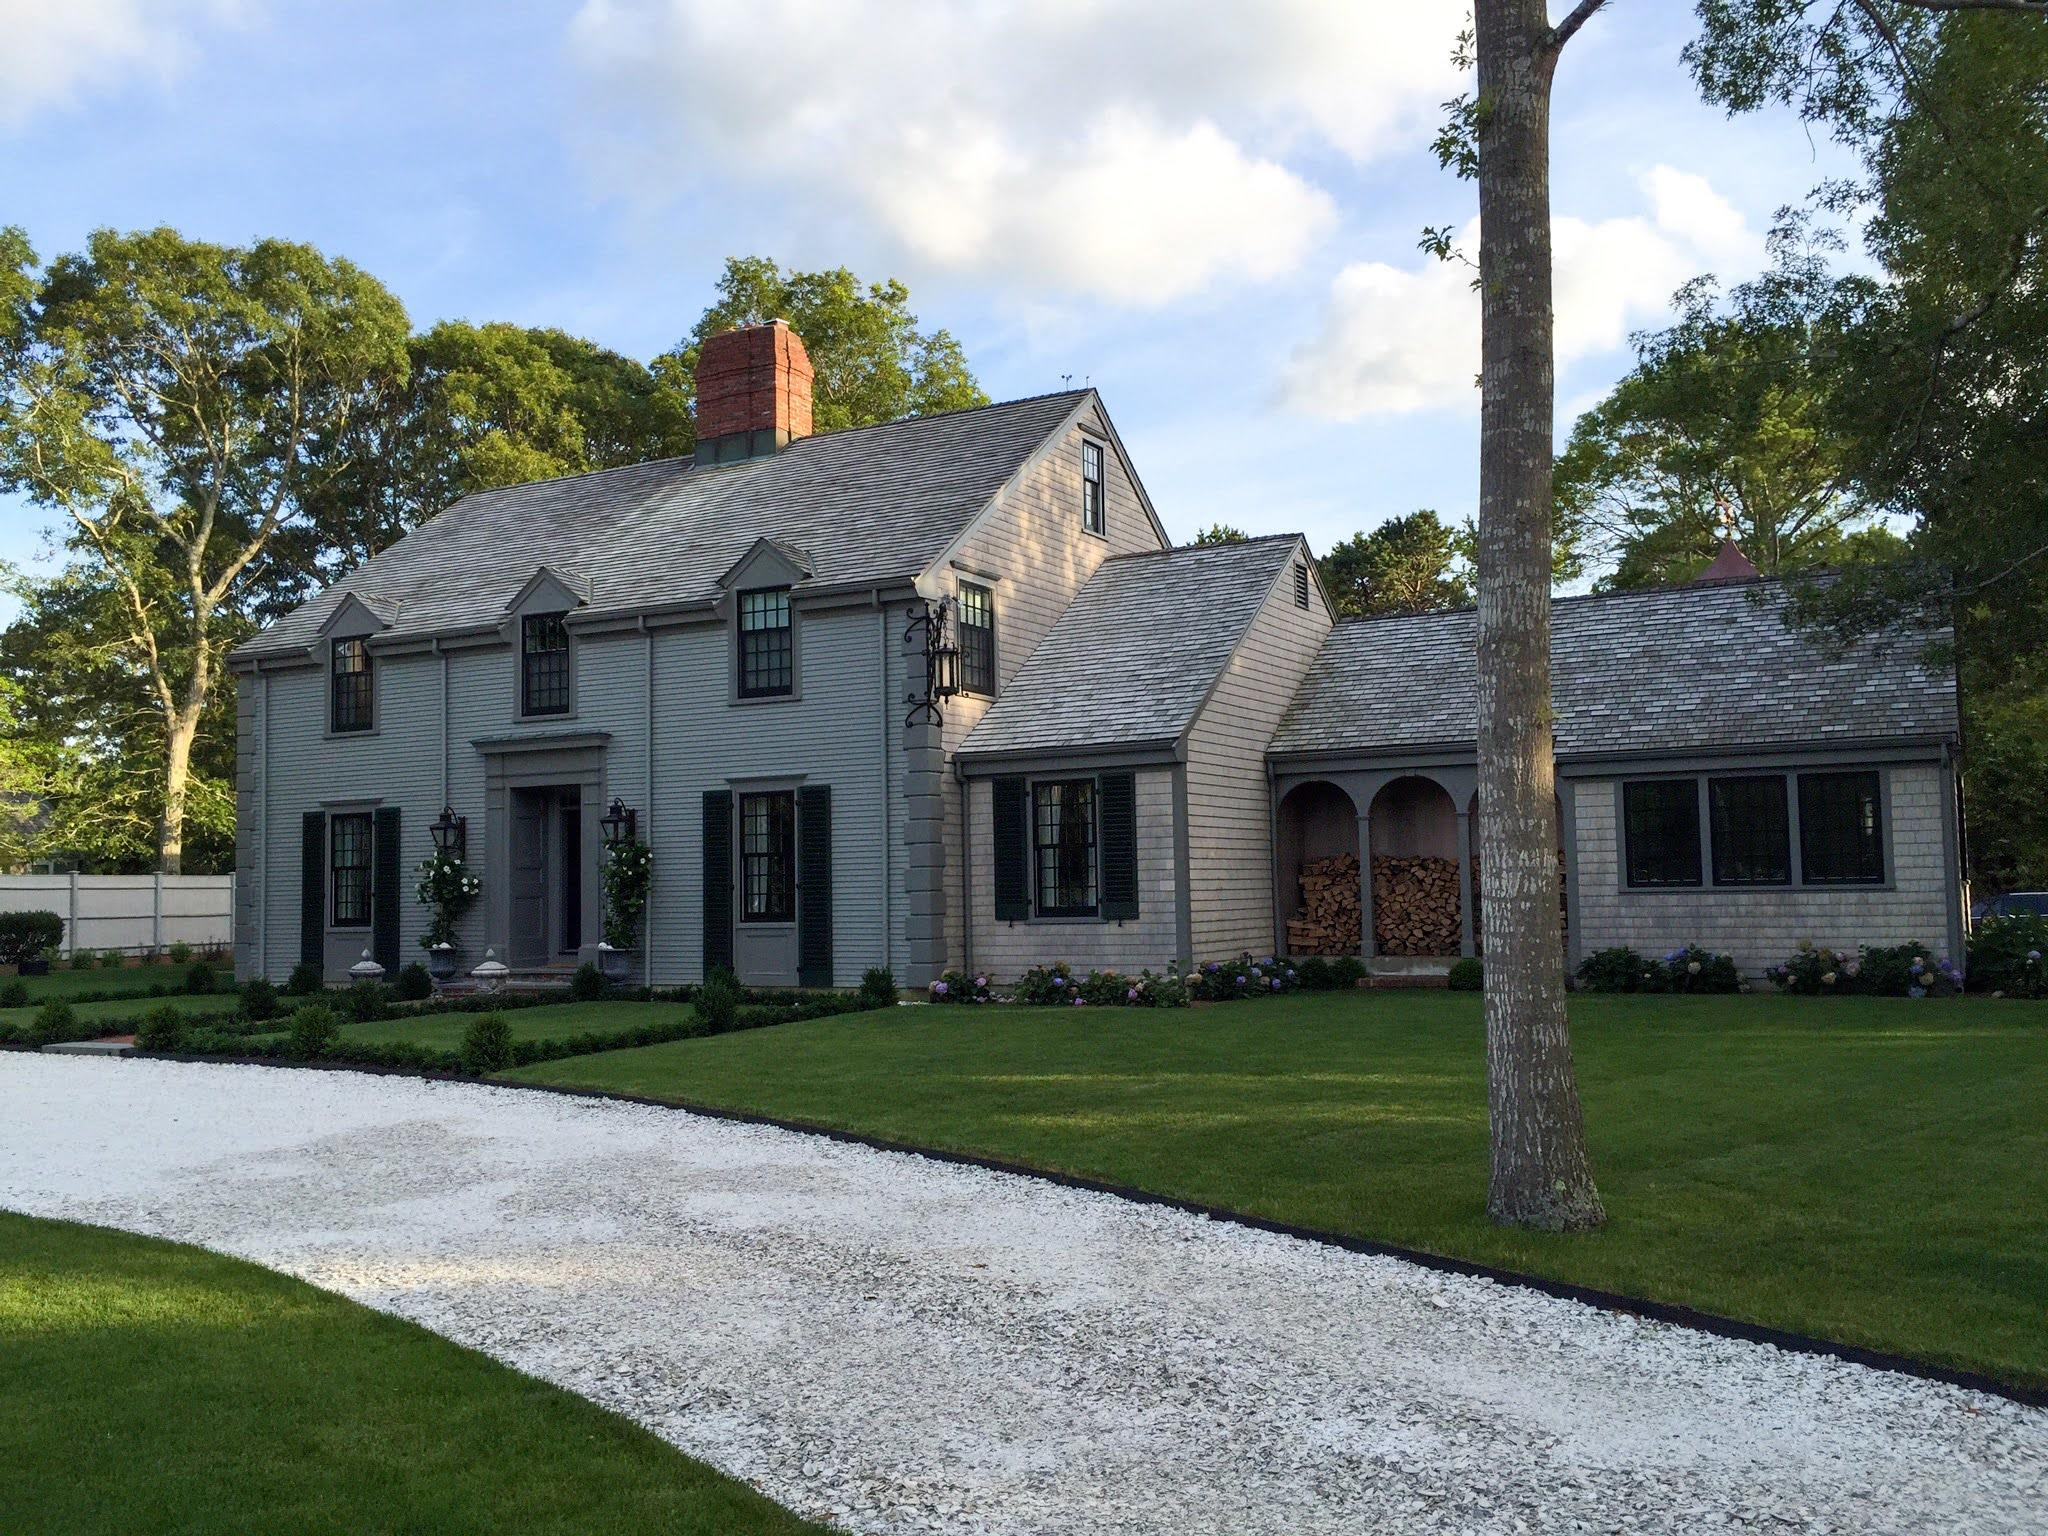 320--seapuit-river-road-osterville-ma